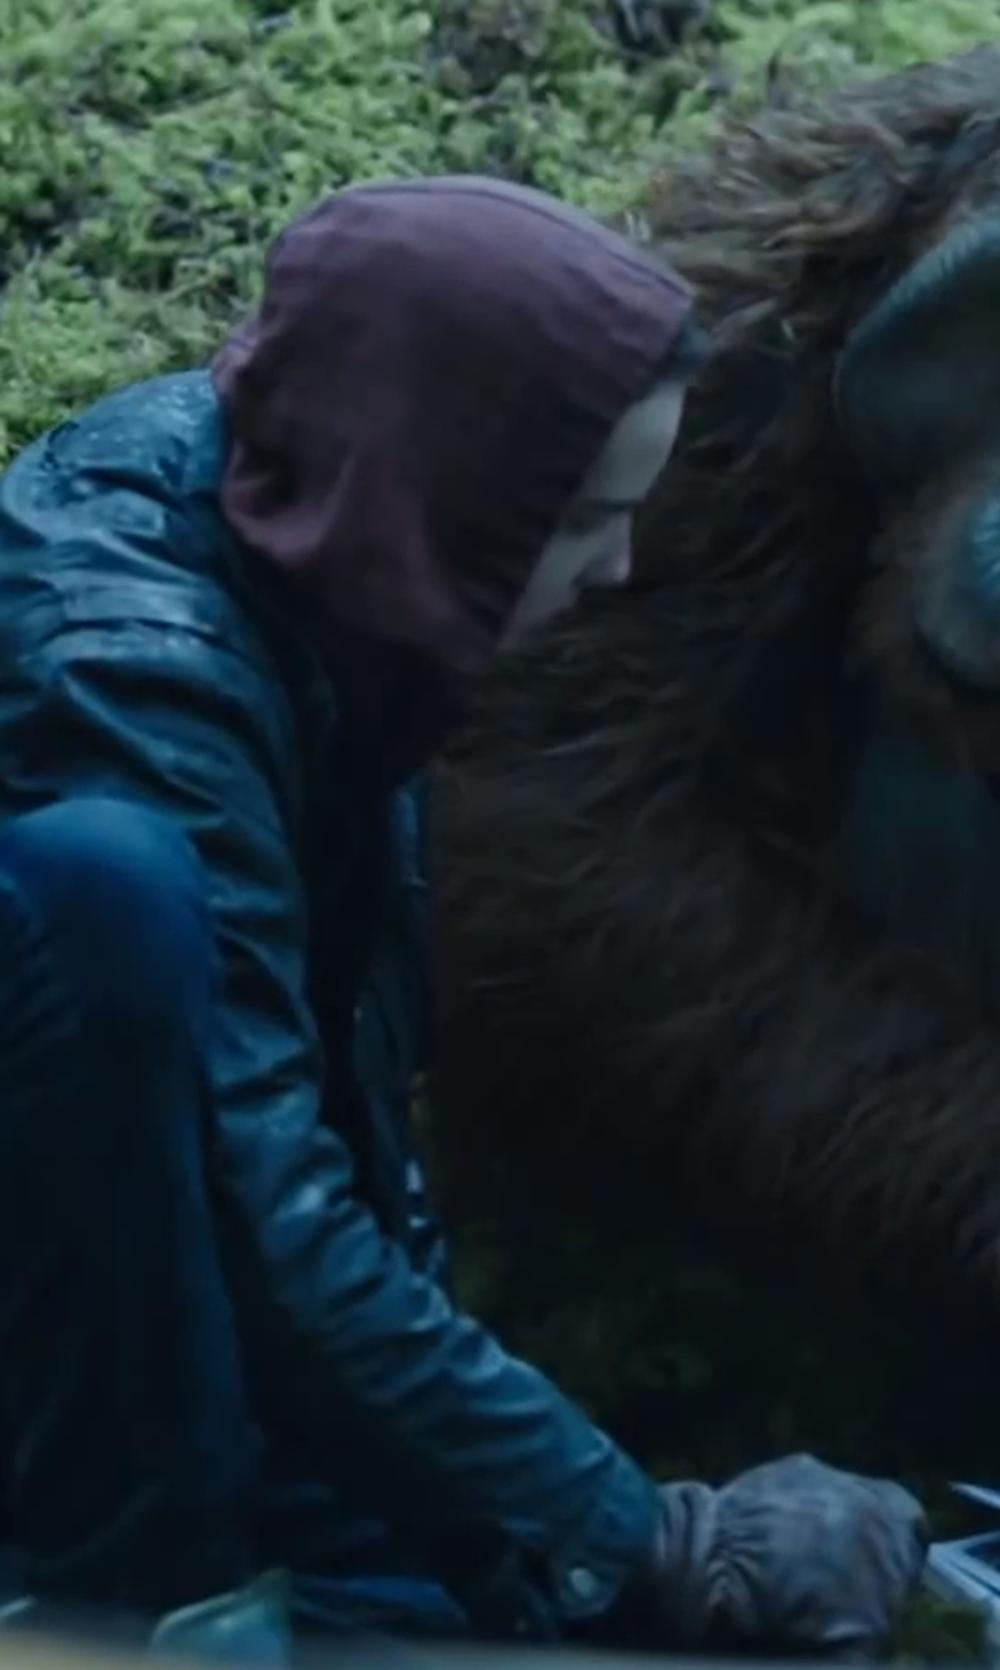 Kodi Smit-McPhee with BARNEYS NEW YORK Knit Leather Palm Gloves in Dawn of the Planet of the Apes